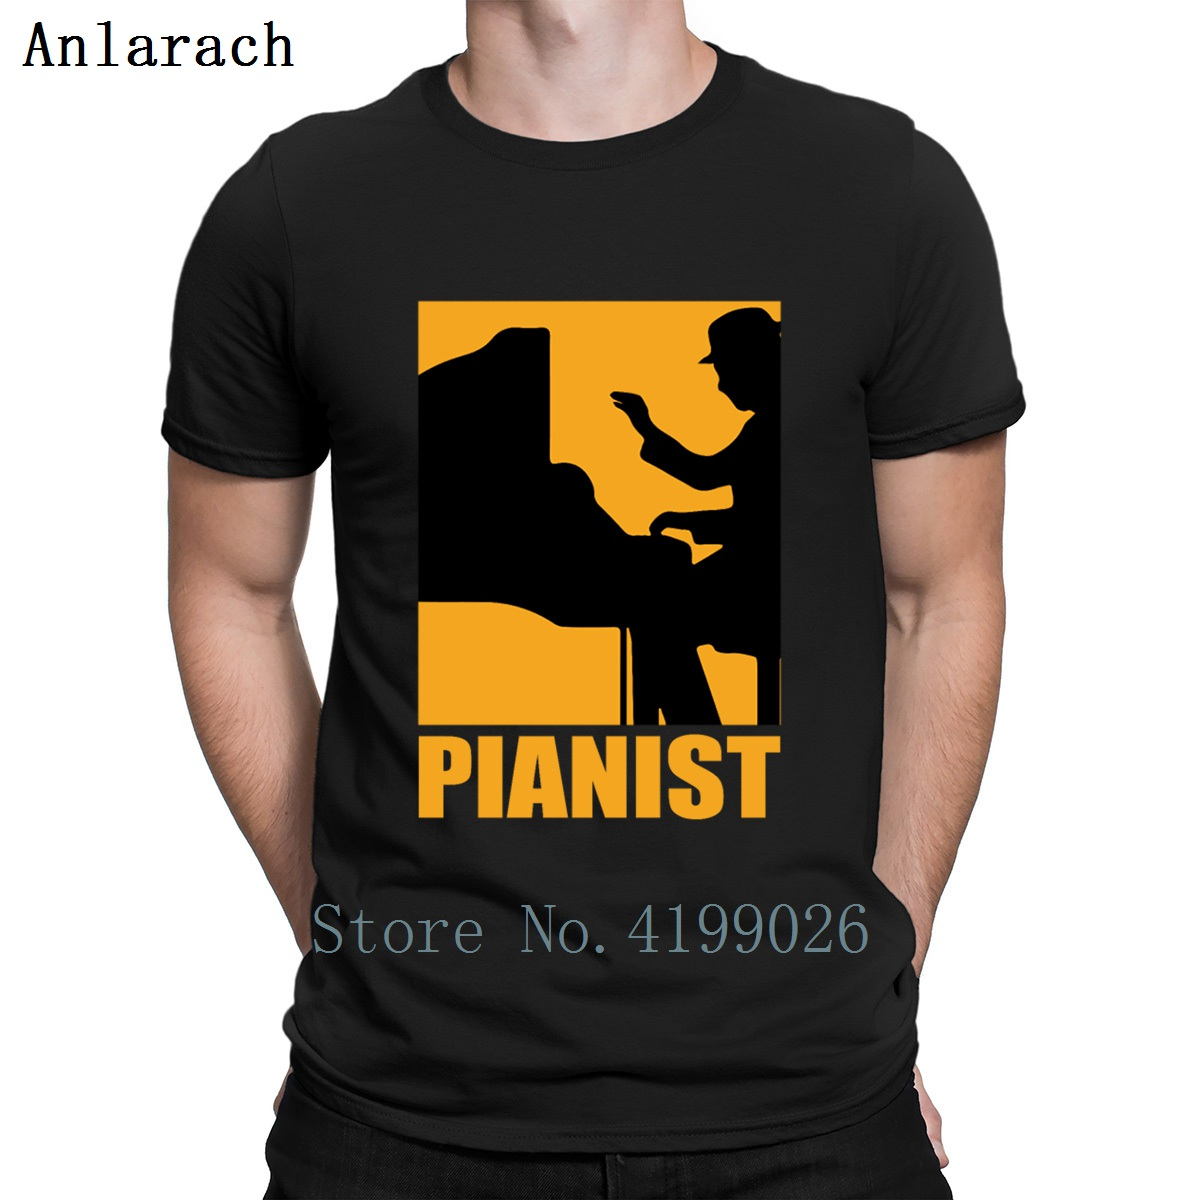 Pianist Design T Shirt New Fashion Spring Autumn Sunlight Short Sleeve Pattern Euro Size S-5xl Custom Natural Shirt image